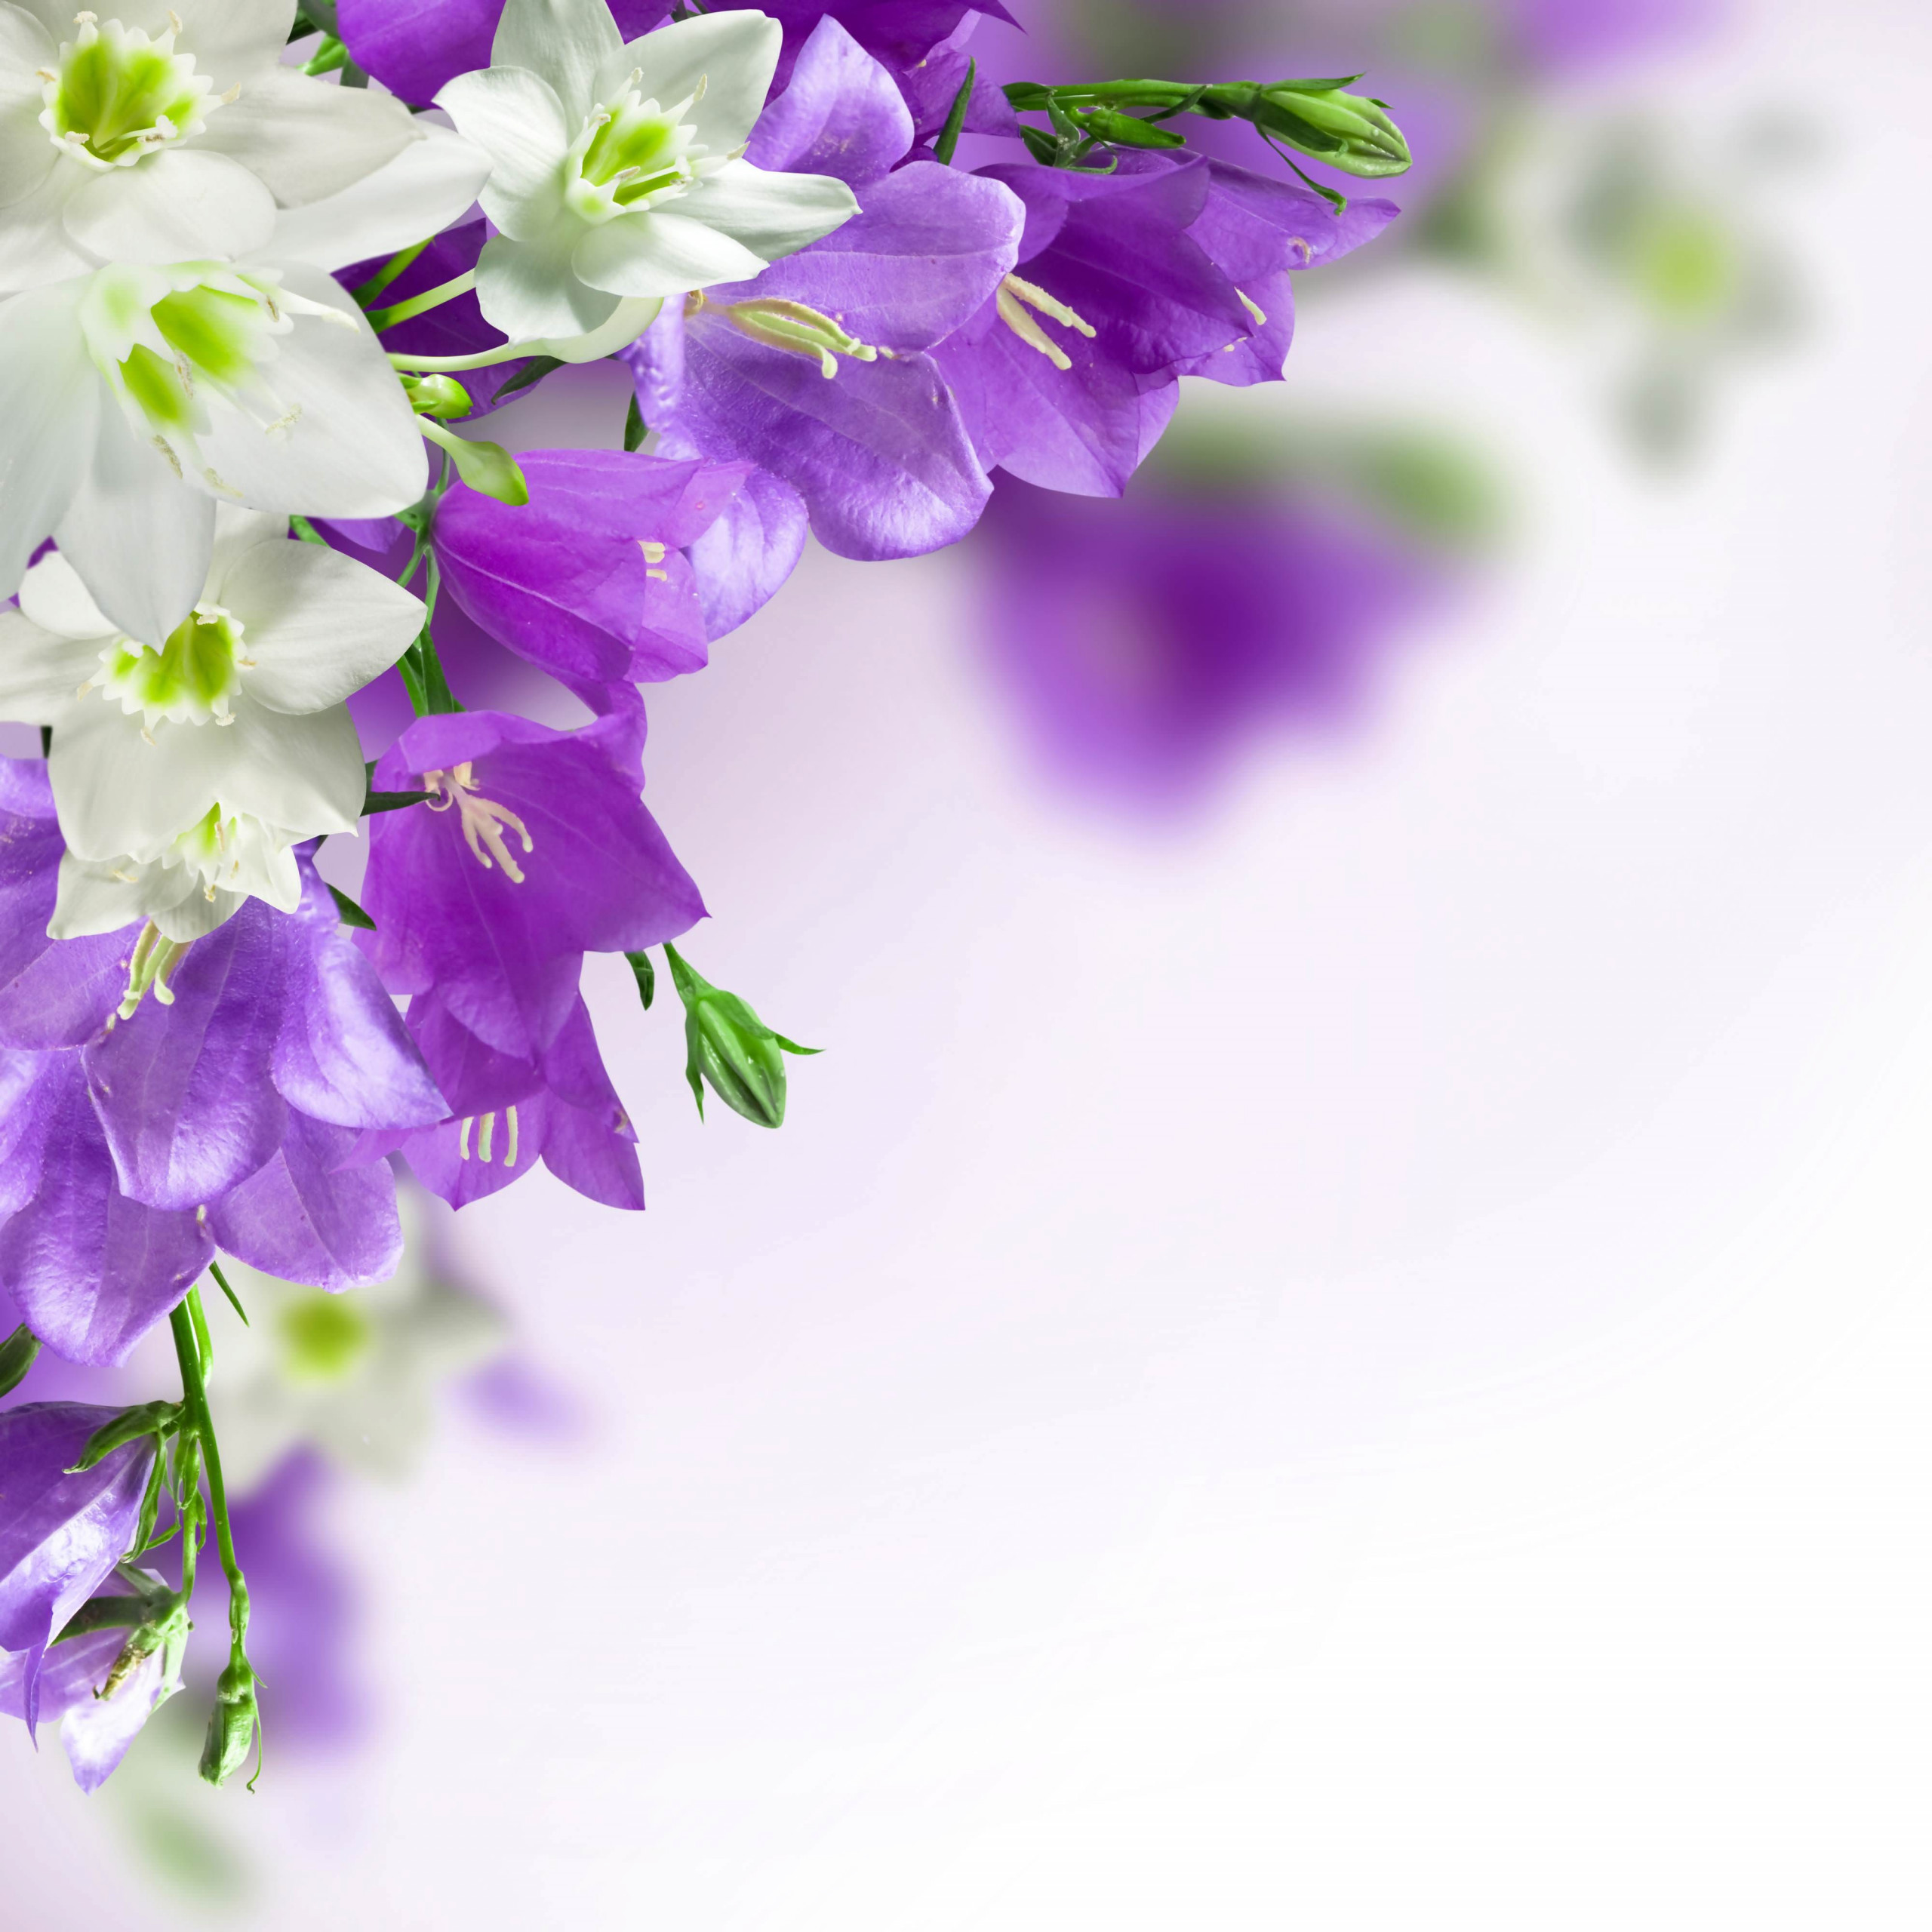 High Res White and Purple Flower Background